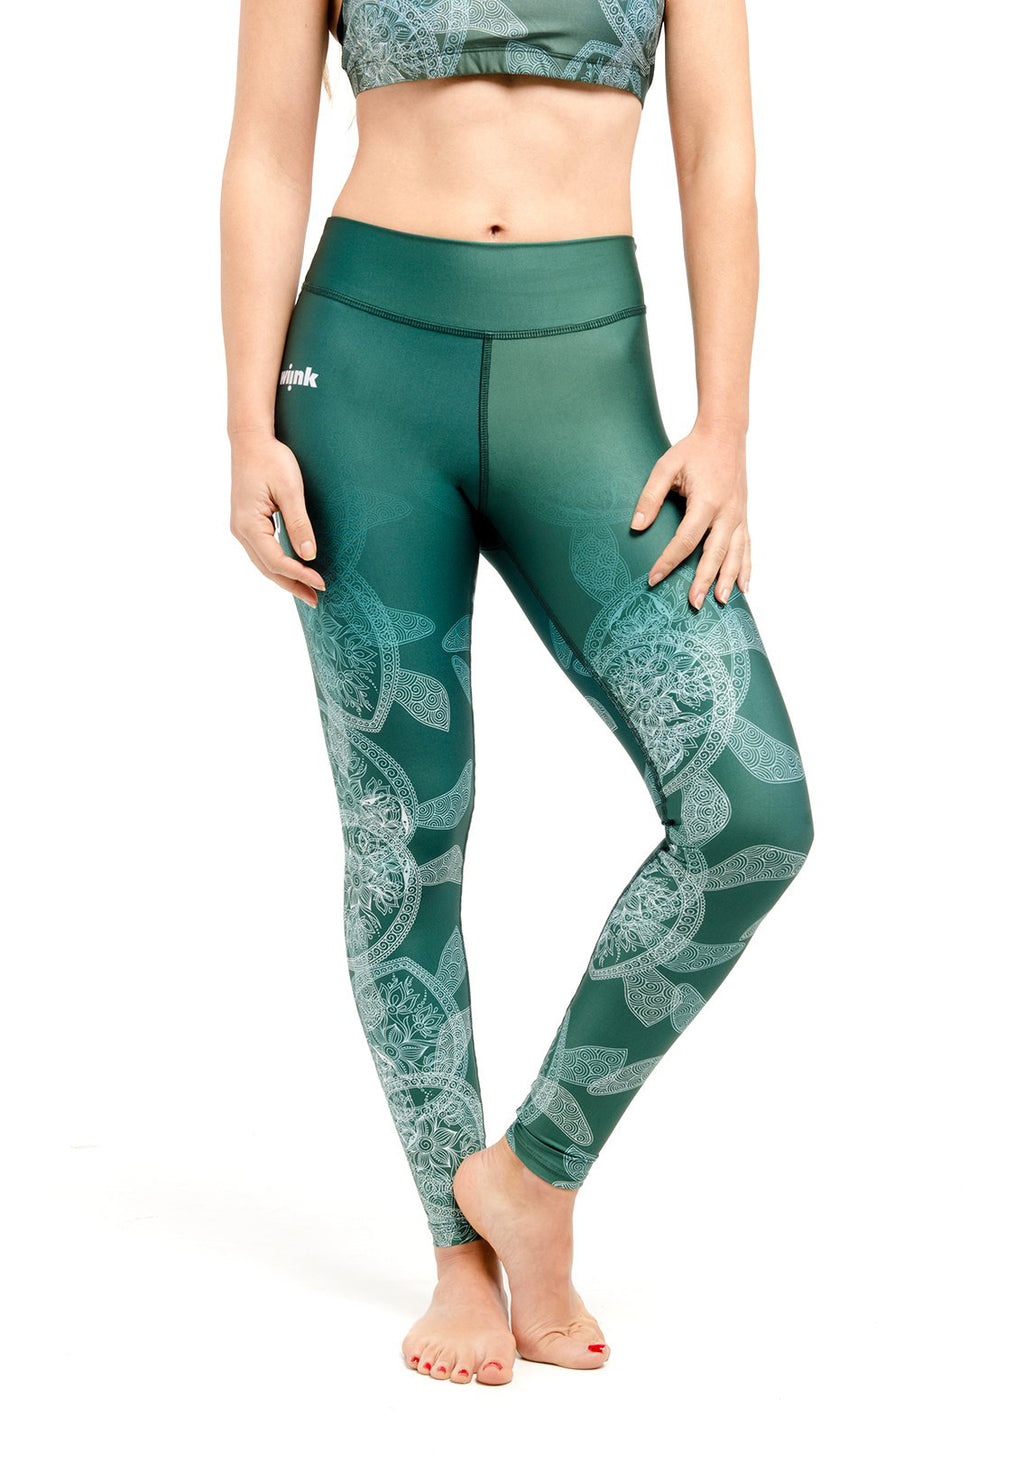 HIGH-WAIST Leggings - Turtle